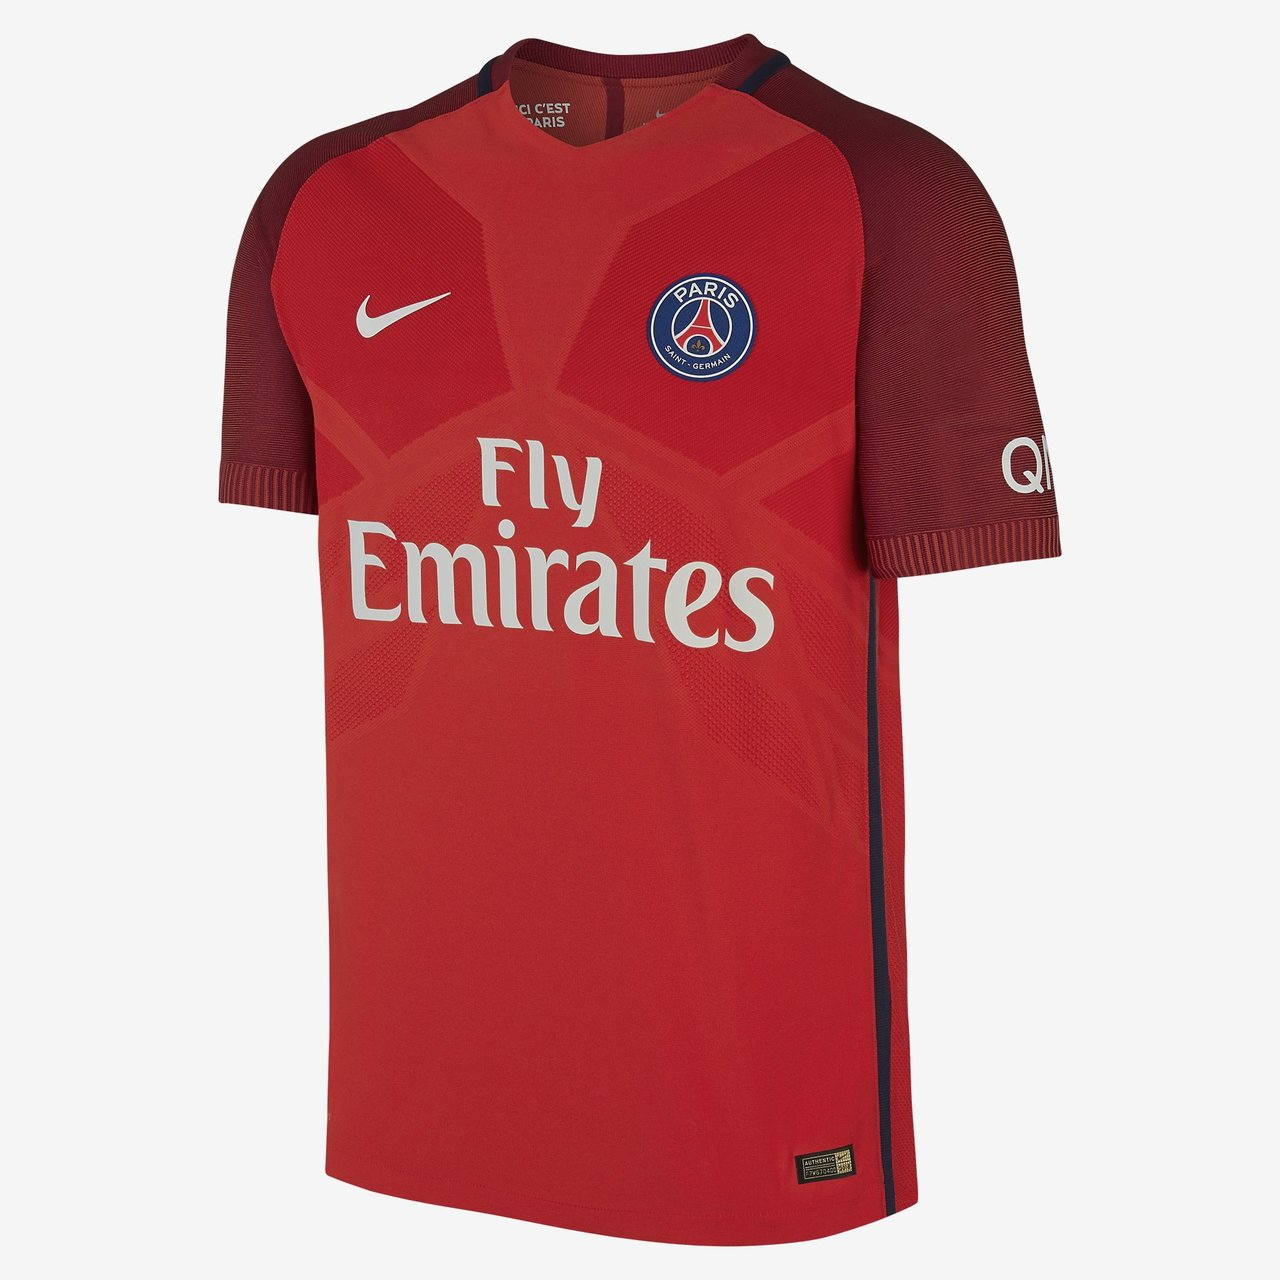 Paris Saint-Germain 16/17 Camiseta de la 2ª equipación